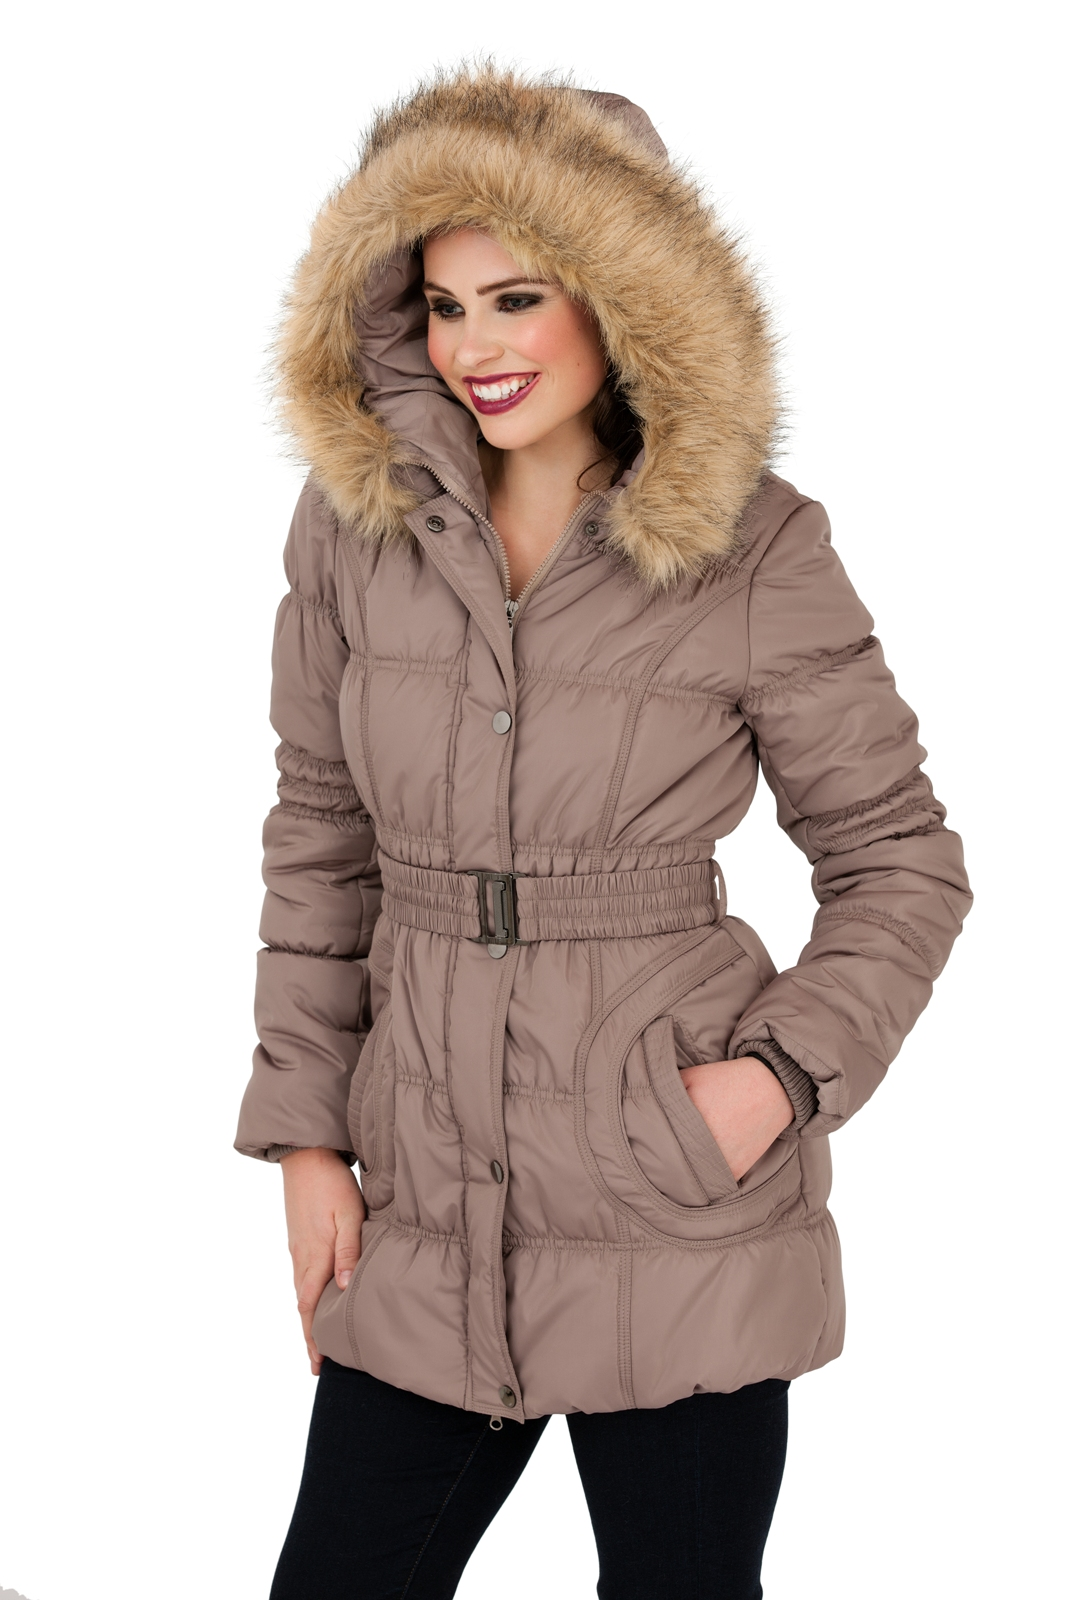 Parka Coats With Fur Hood Uk - Jackets In My Home